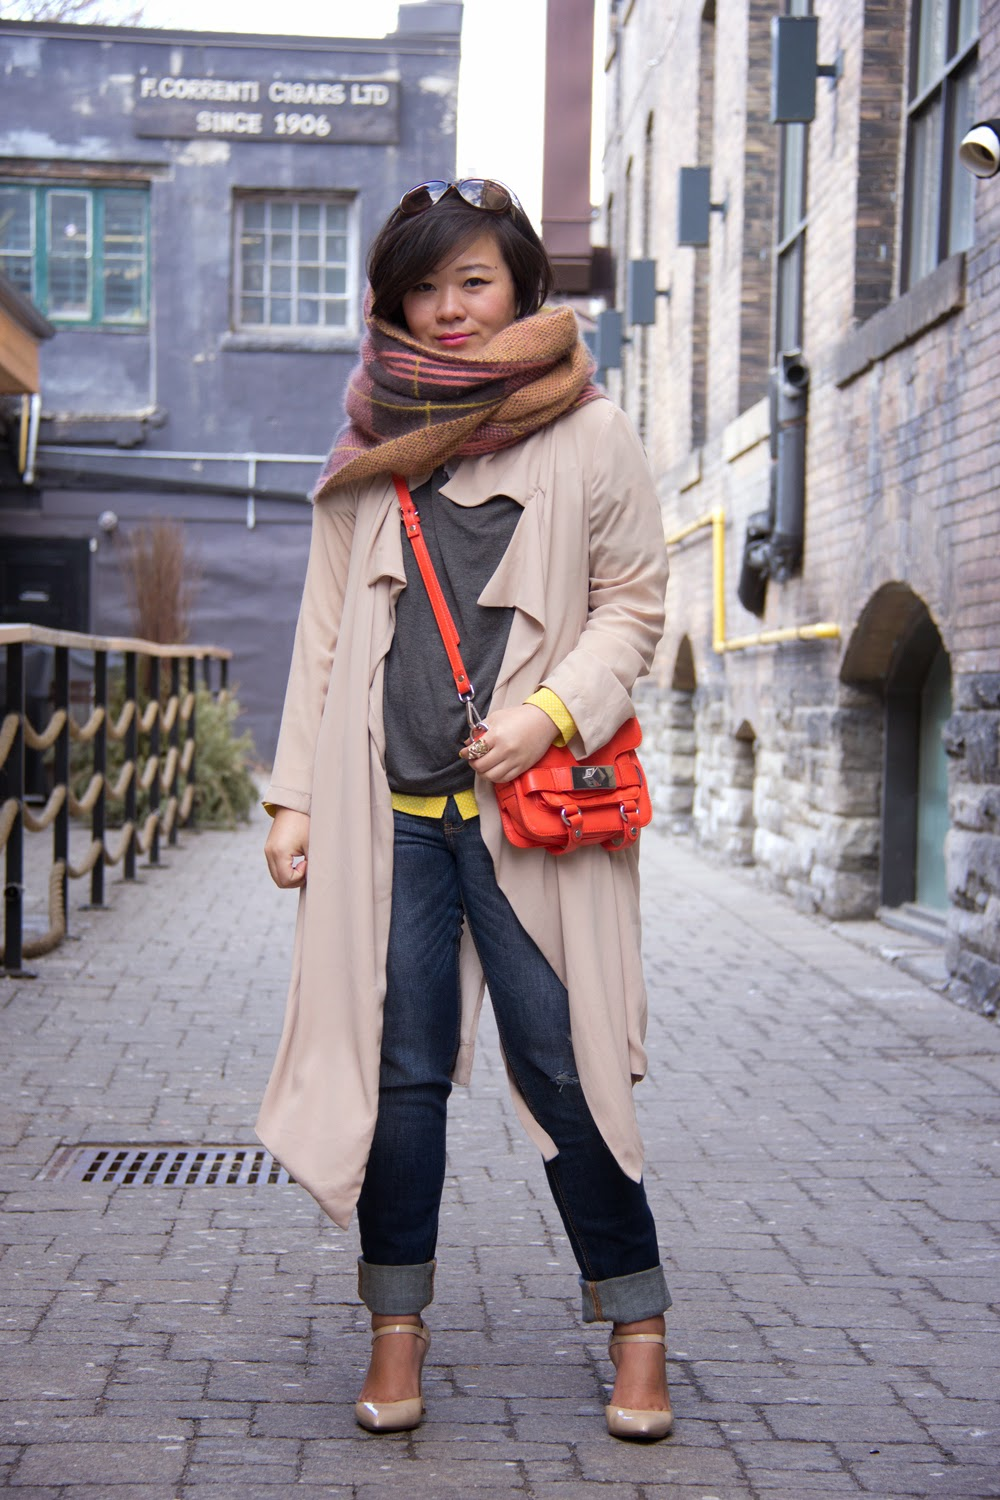 Spring-Outfit-Look, Chiffon-Trench-Coat, Orange-Mini-Toto-Bag, Street-Style, Casual-Chic